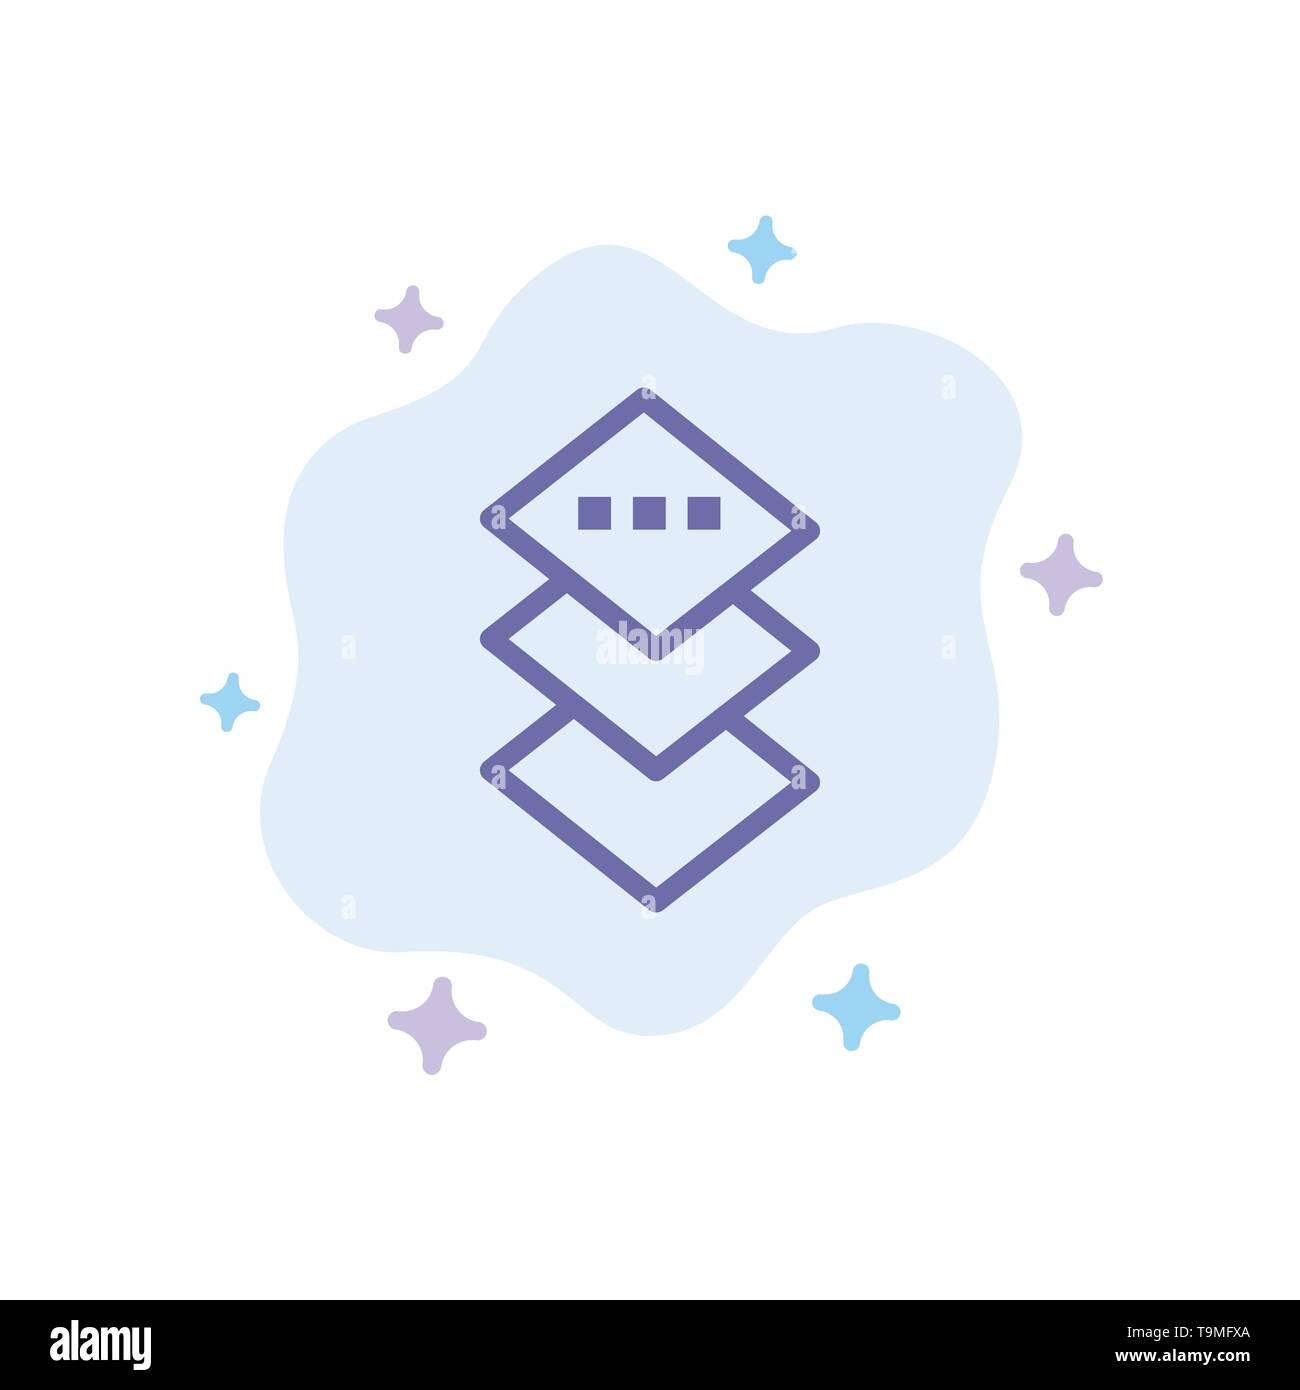 Design, Plane, Square Blue Icon on Abstract Cloud Background - Stock Image